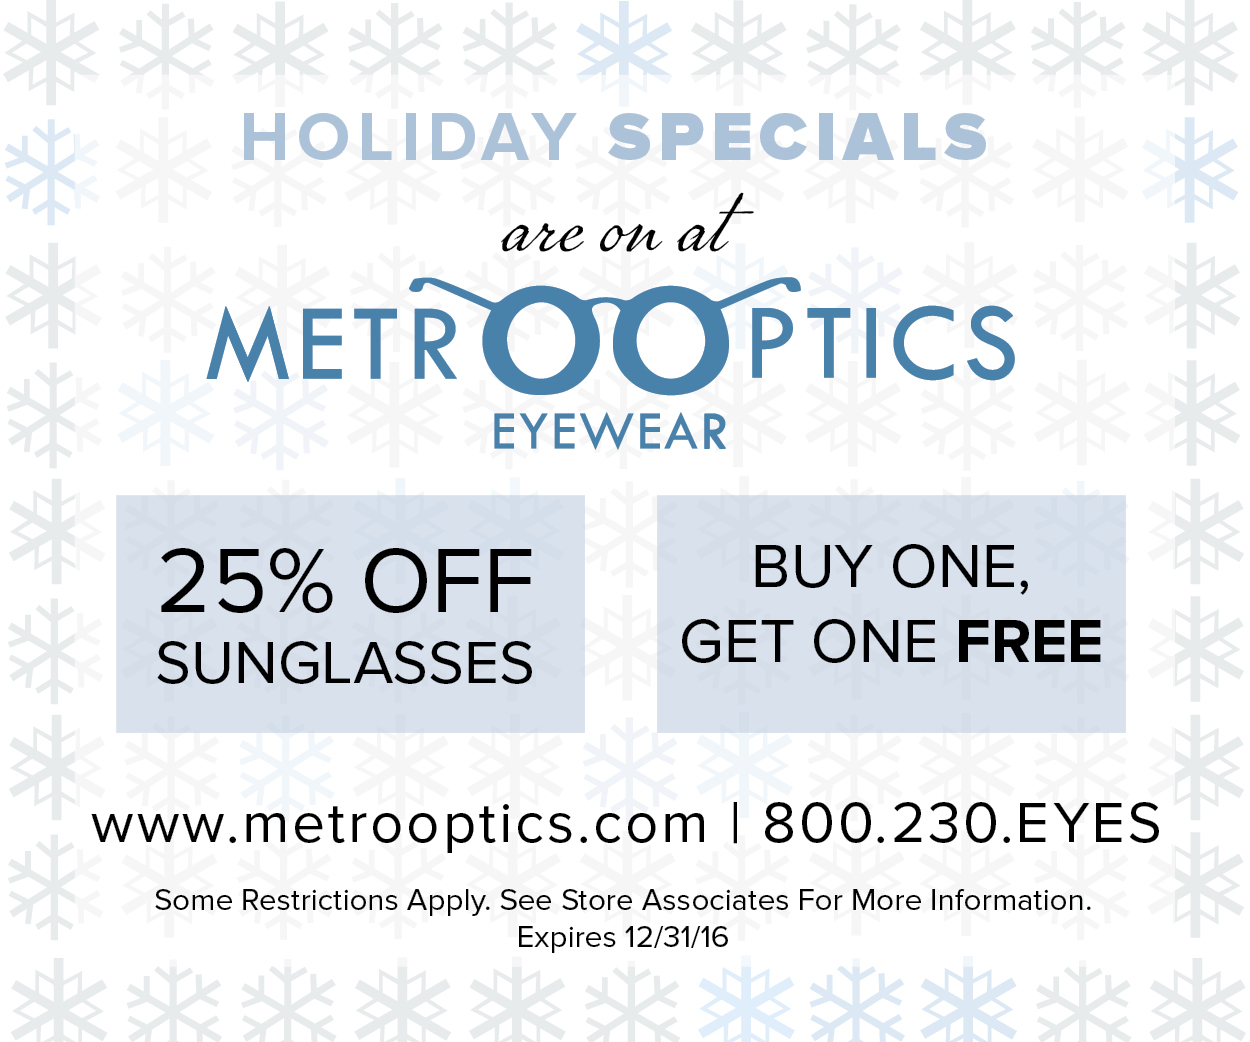 metro-holiday-specials-2016